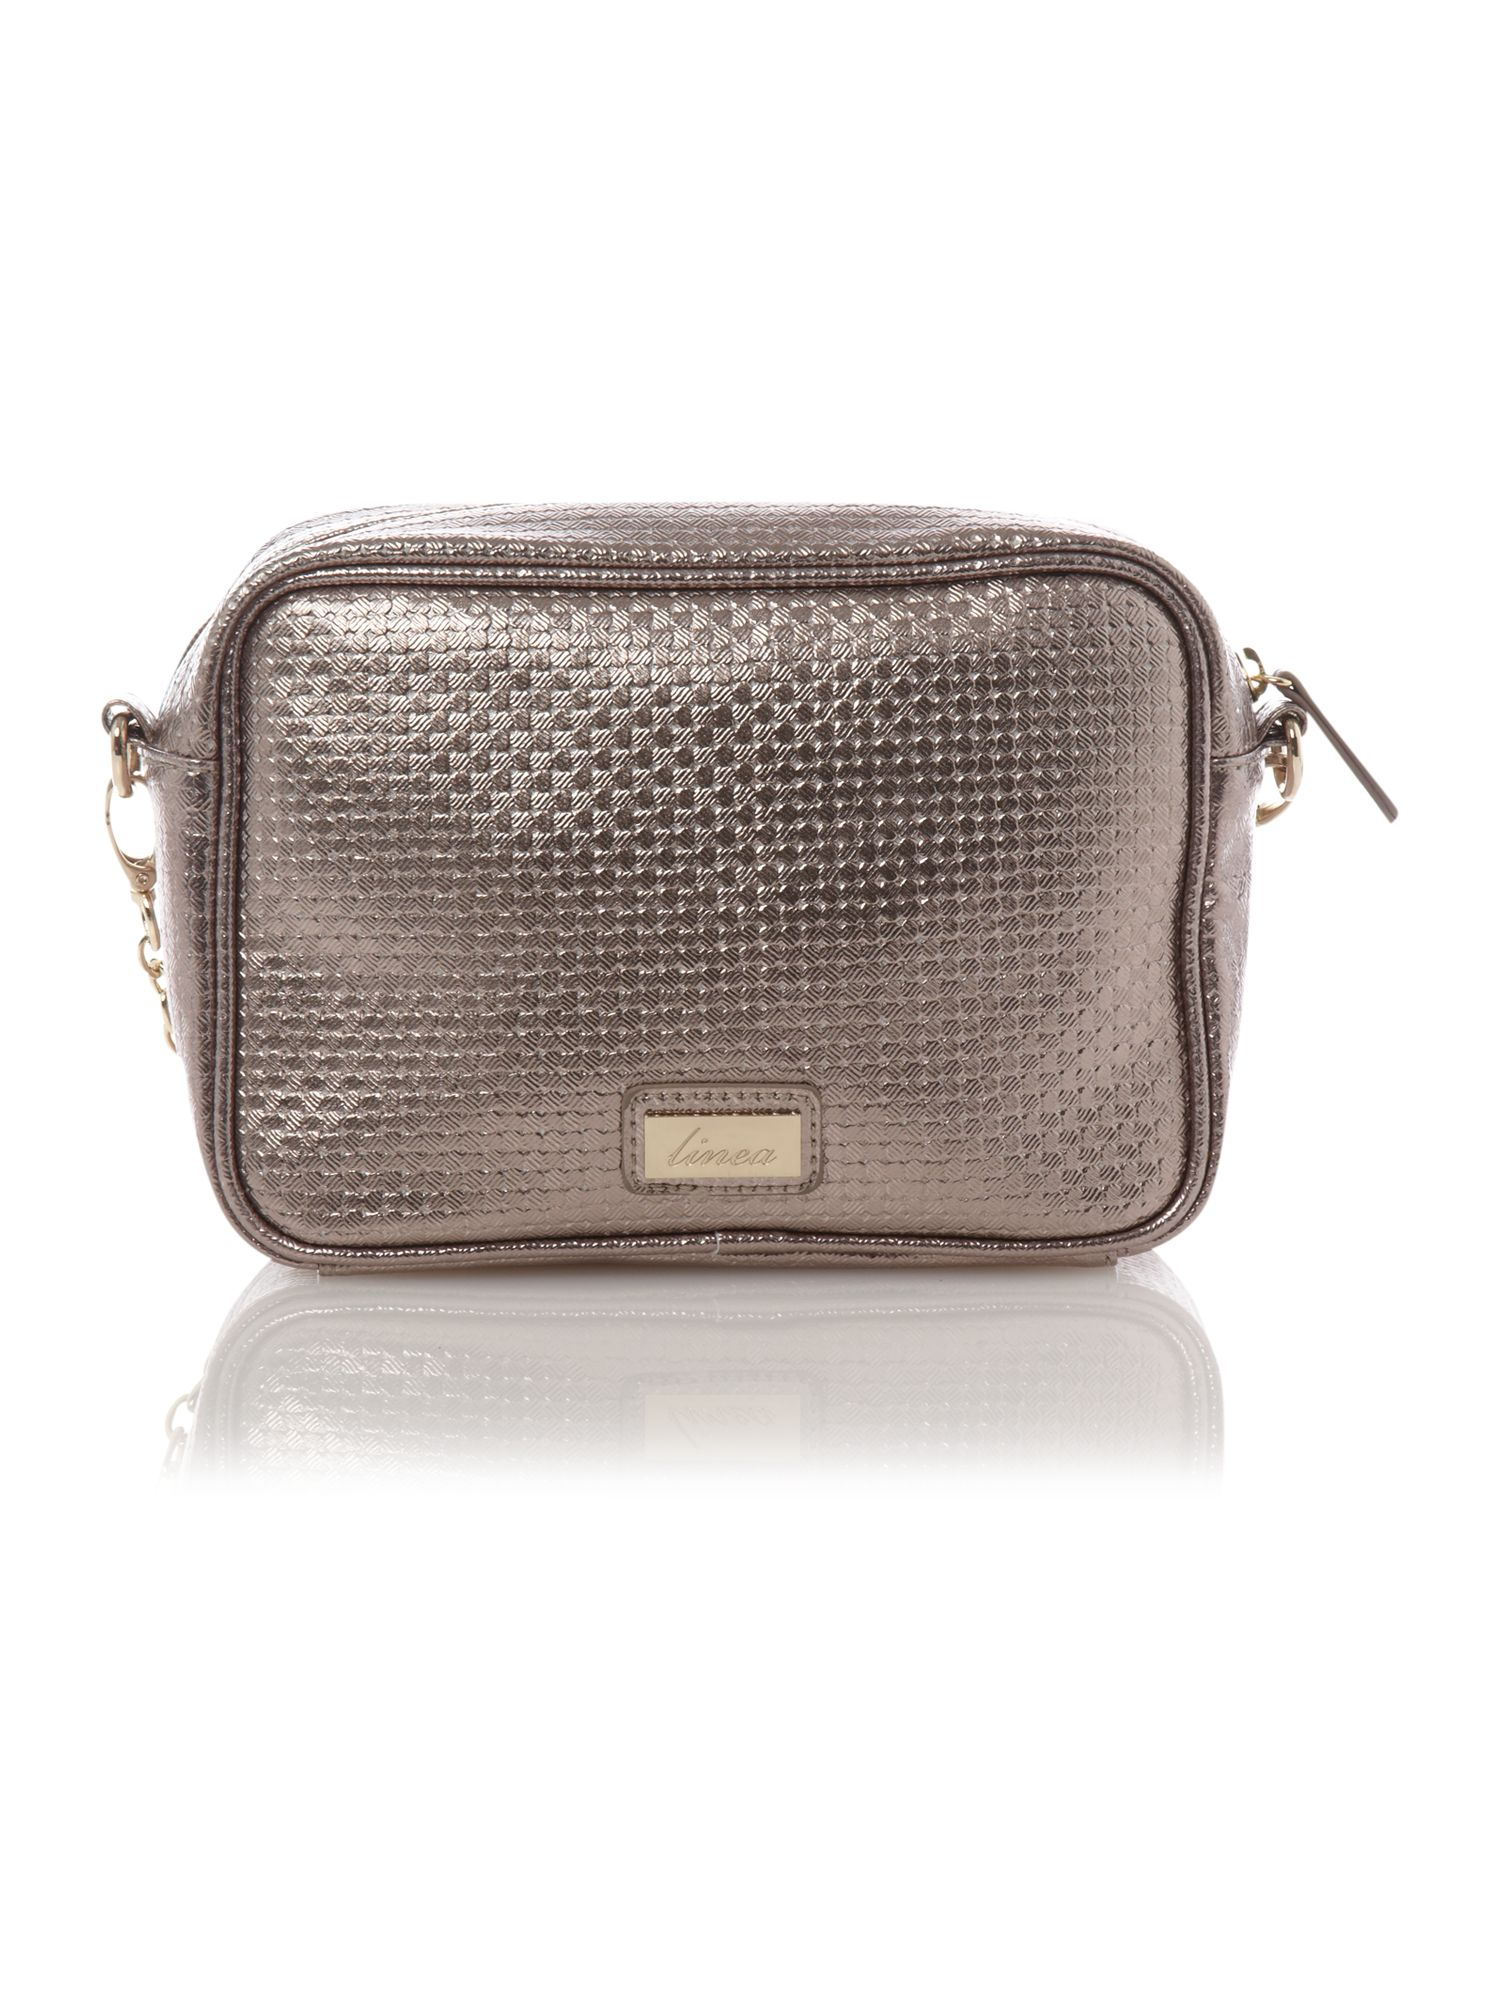 Gina cross body bag